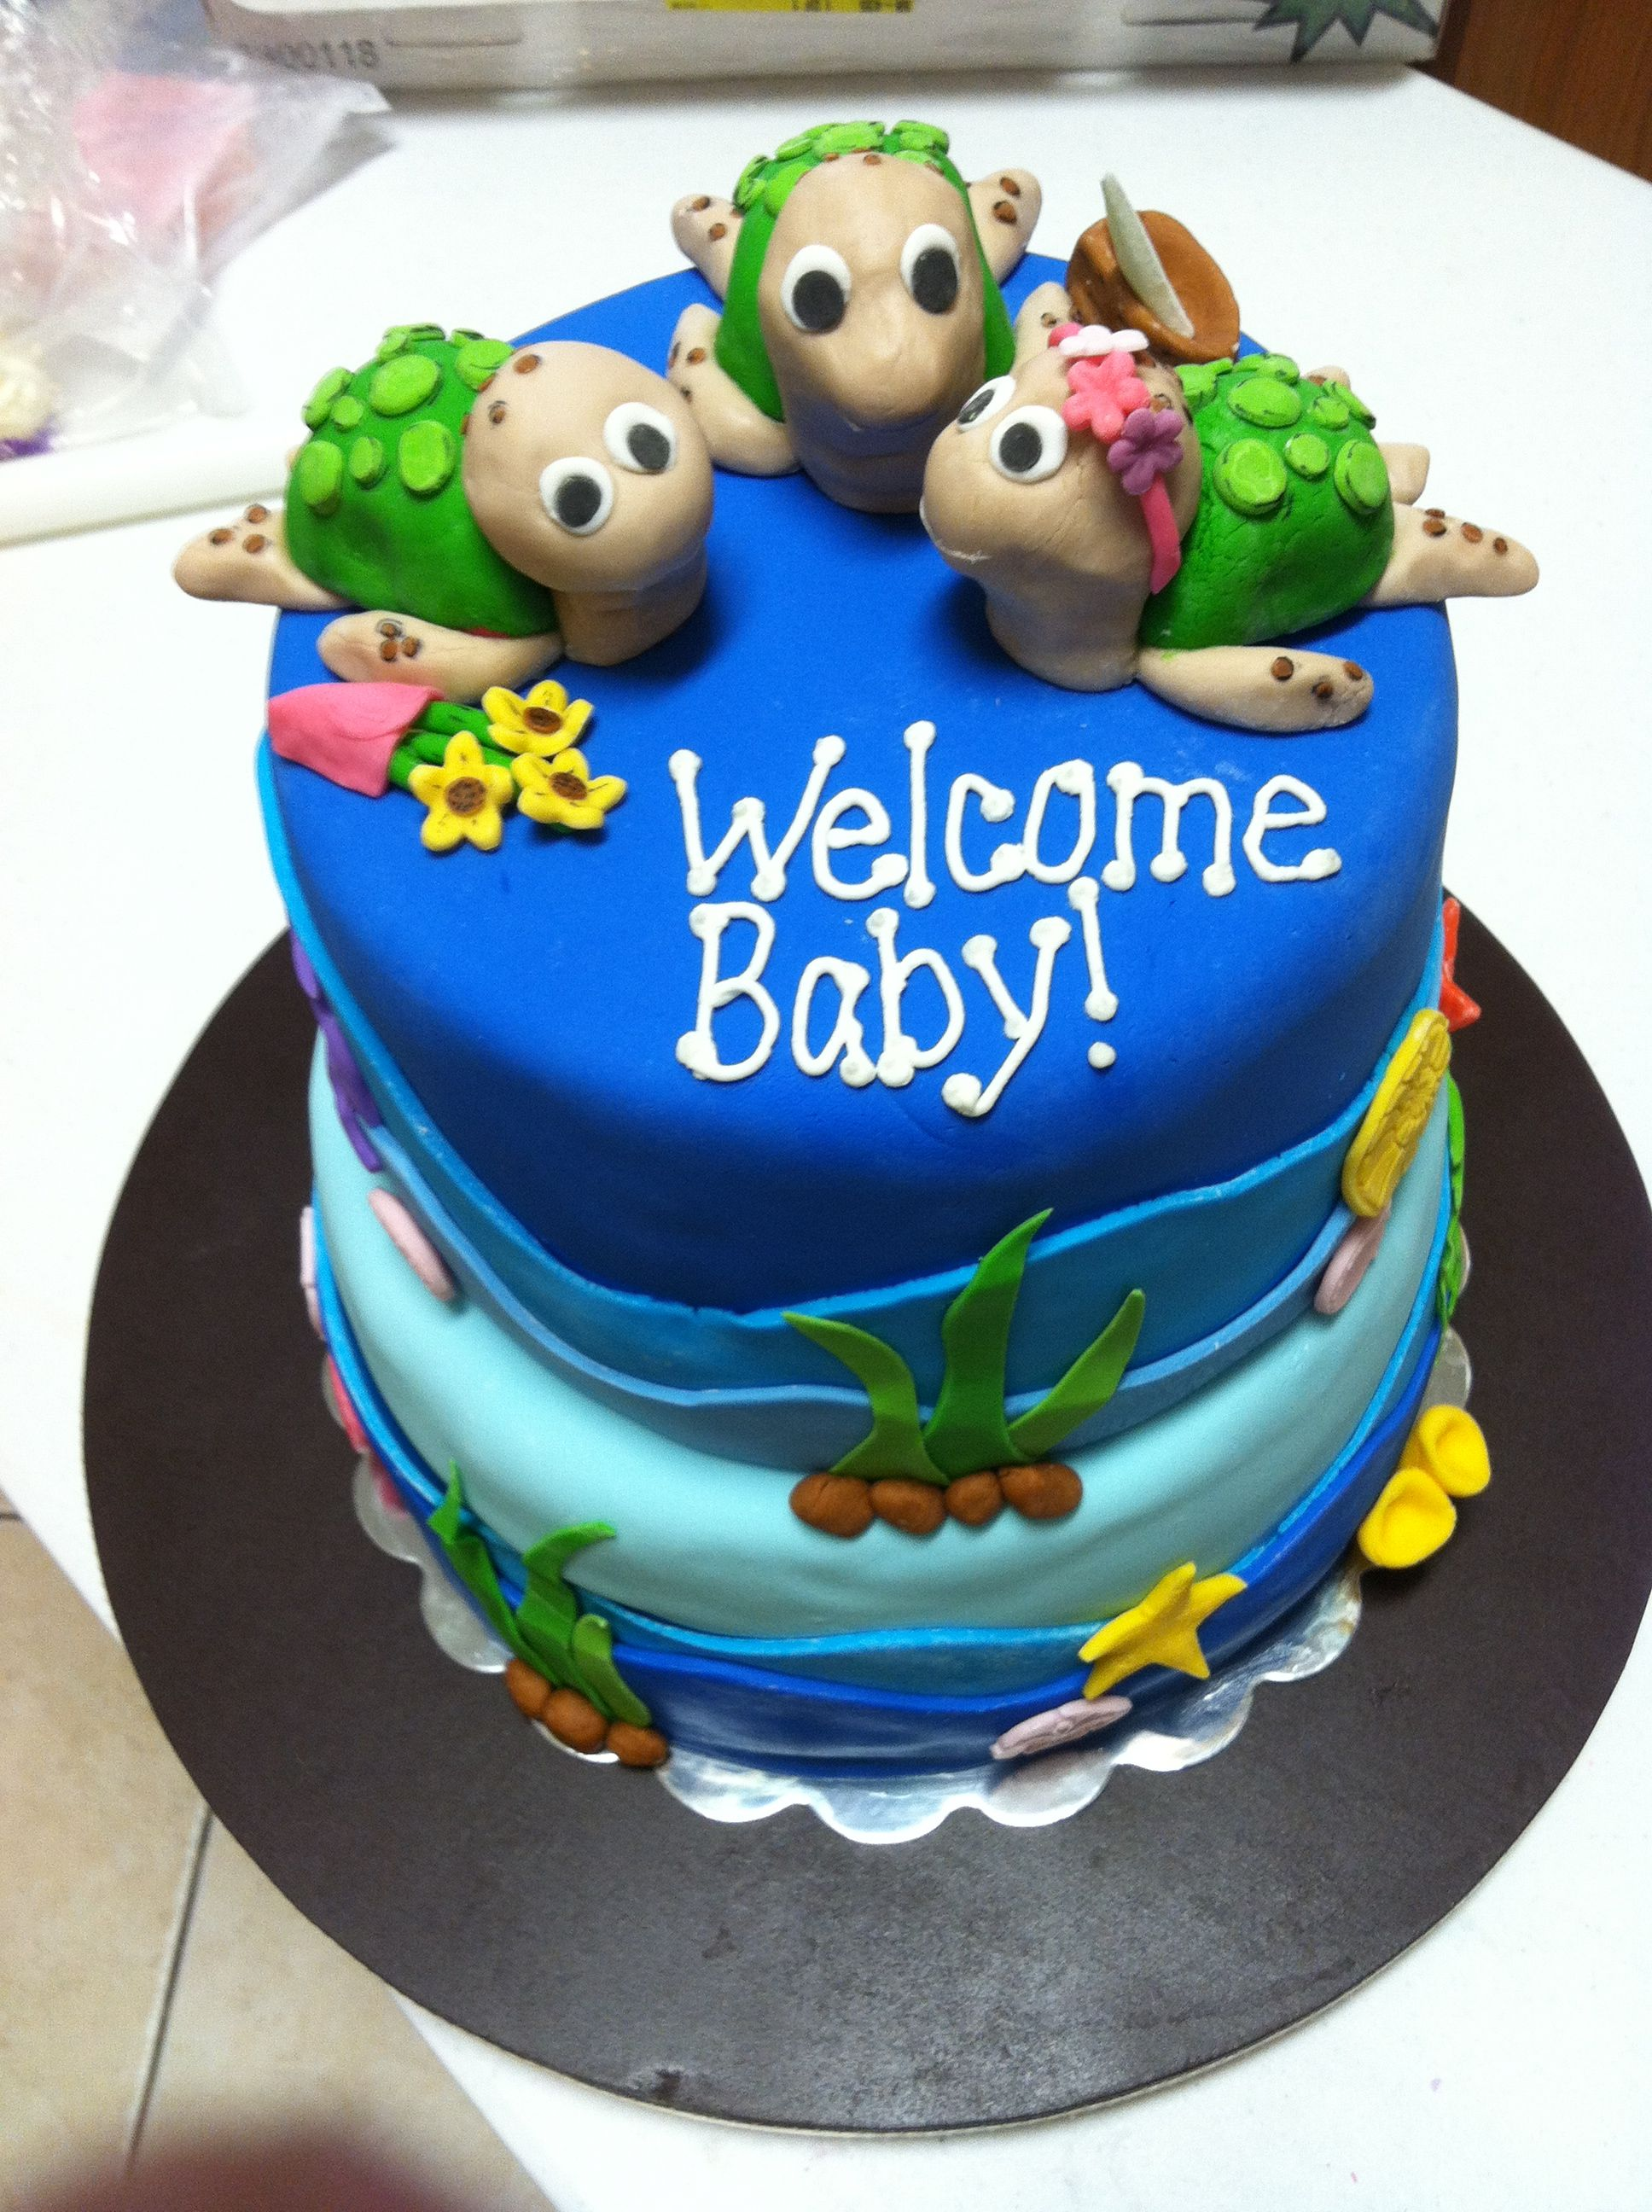 Sea turtle baby shower cake by C.R. Sweets